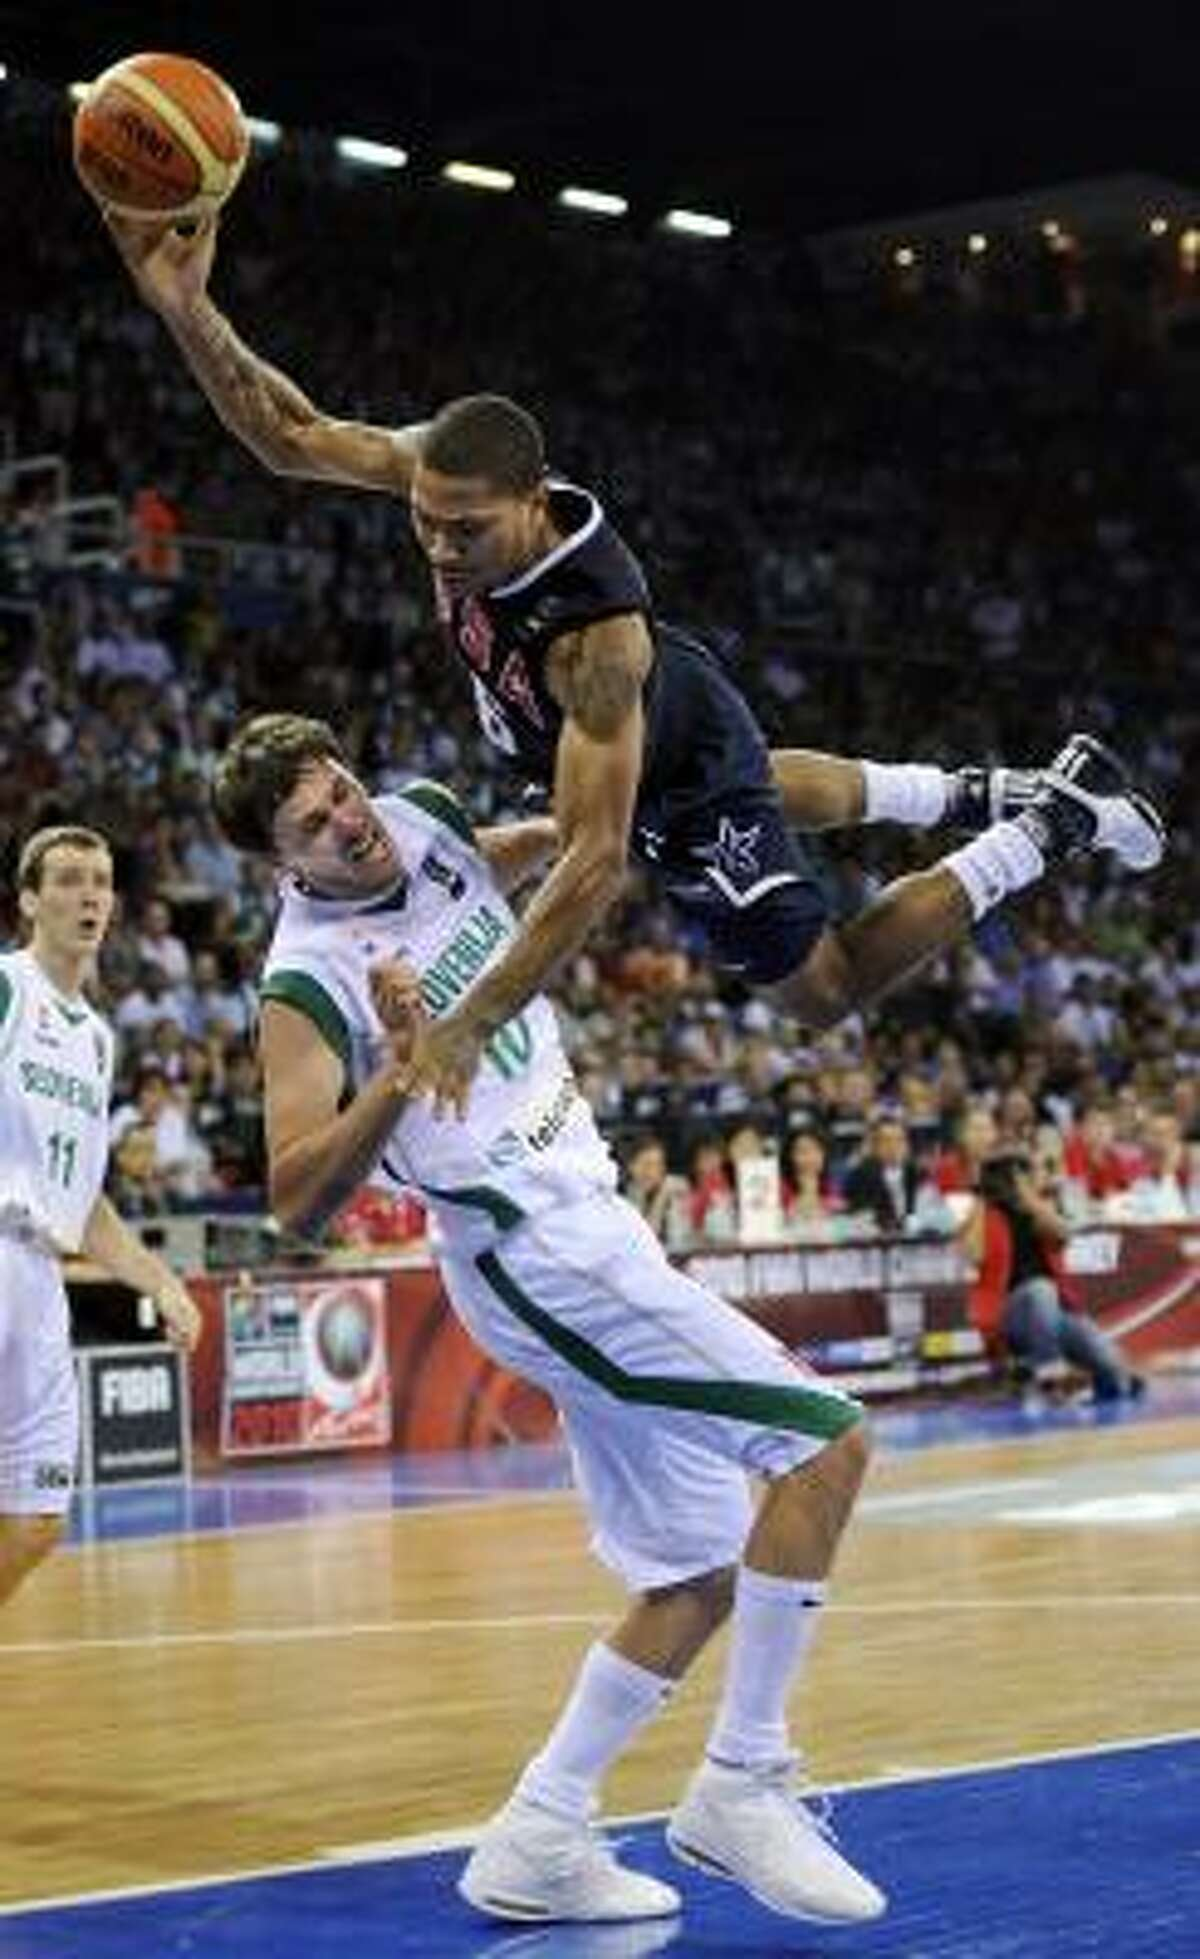 USA's Andre Iguodala, right, falls over Slovenia's Bostjan Nachbar as he goes up to the basket.